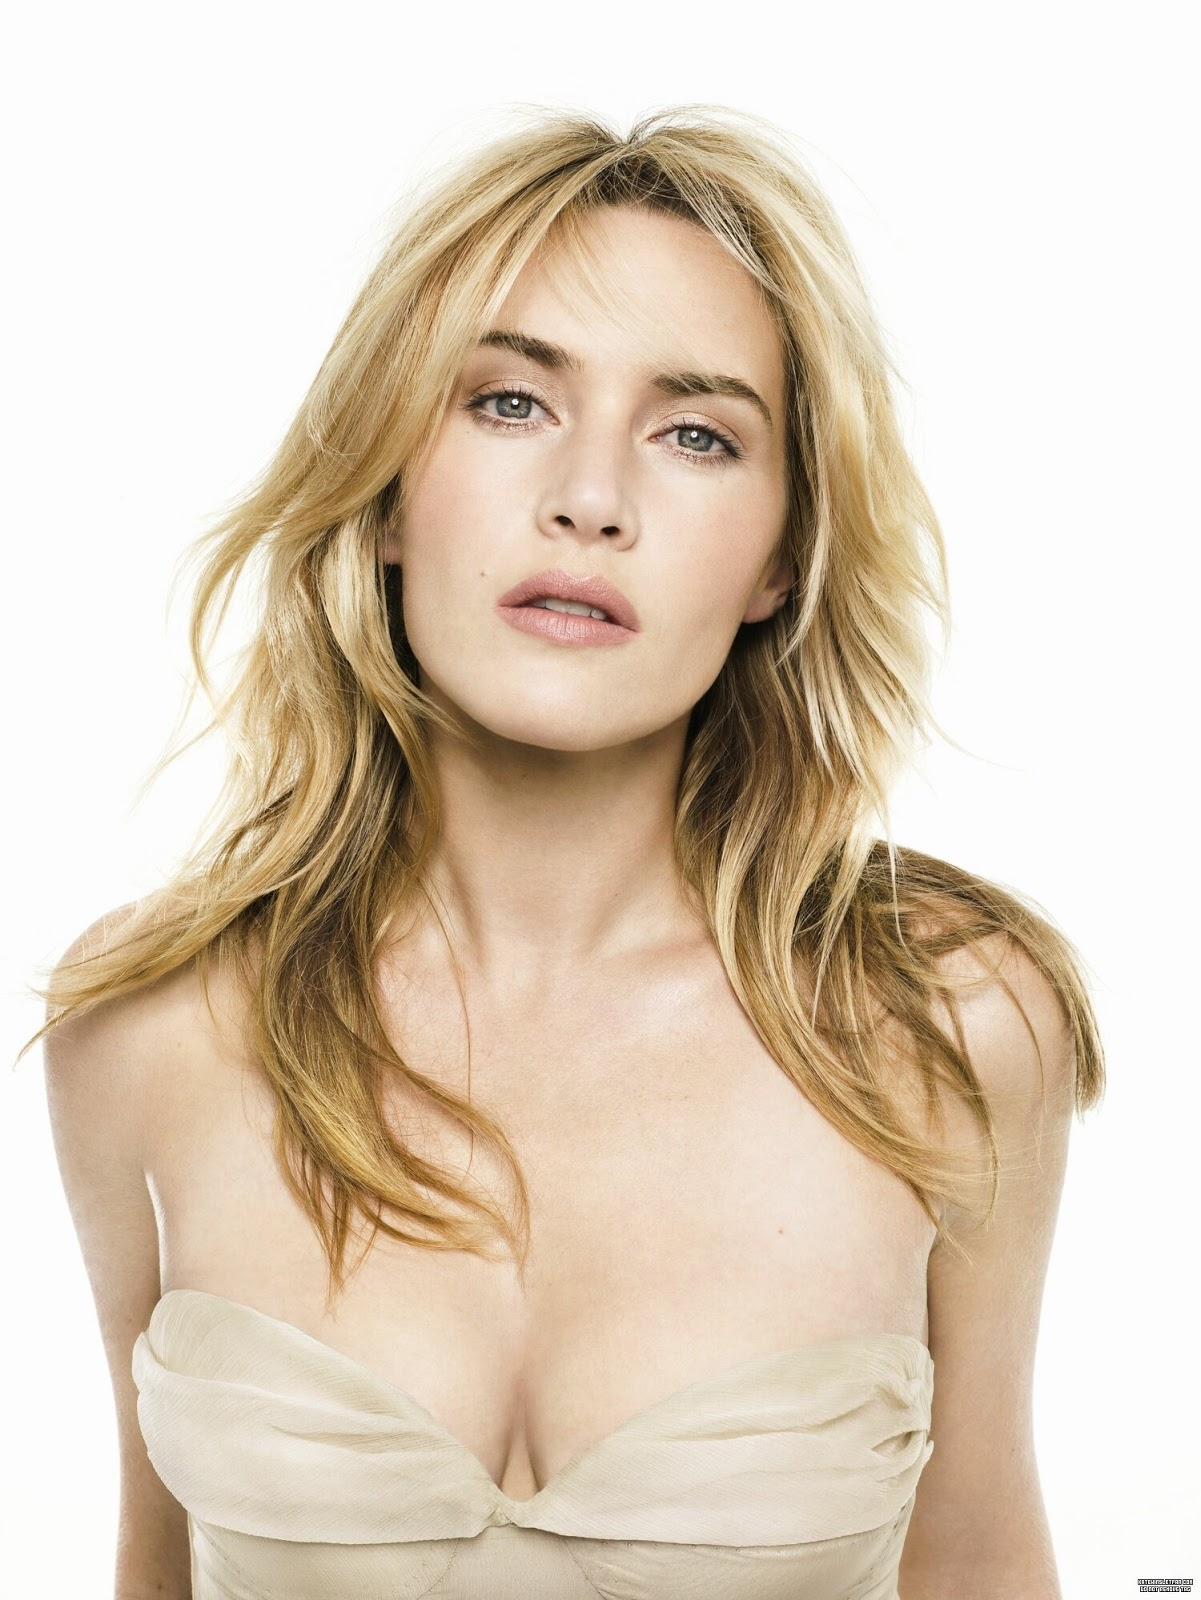 Kate winslet in the reader 4